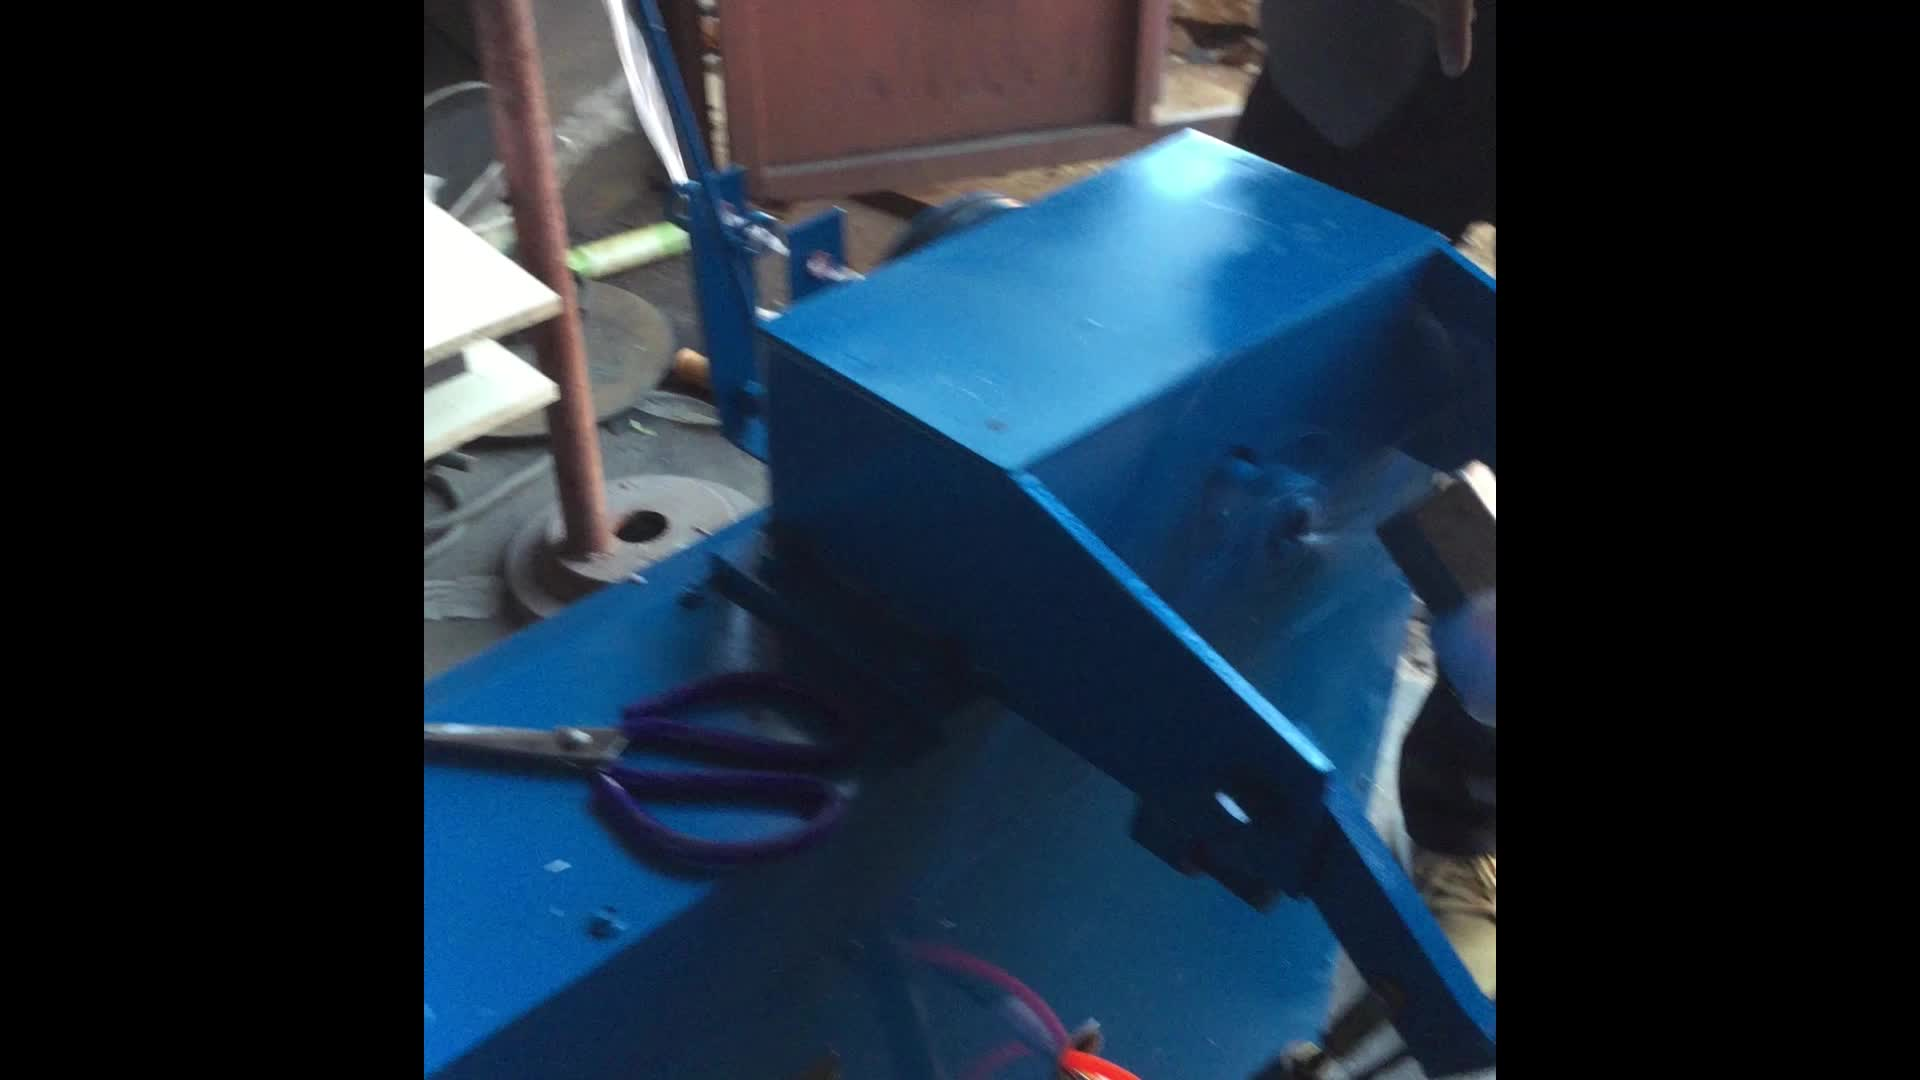 Automatic weight  ball  winder machine in new condition from YiRun